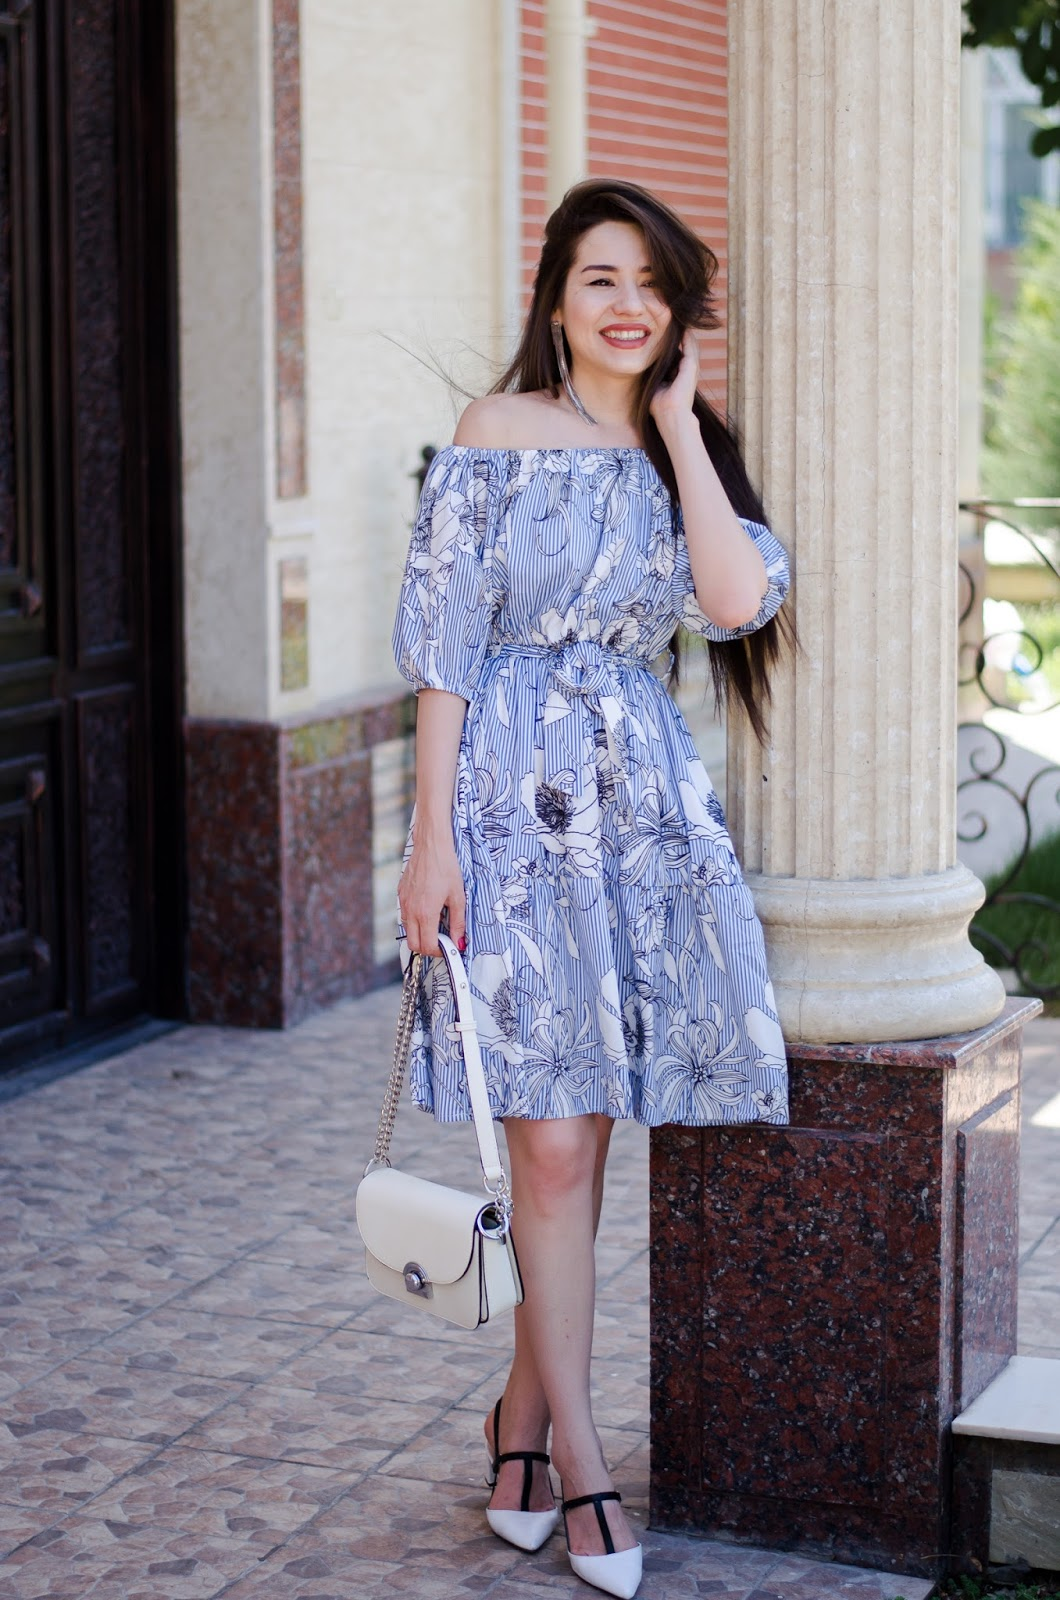 fashion blogger diyorasnotes diyora beta fashion style outfit street style off shoulder dress midi dress zaful white bag white heeled shoes casual outfit